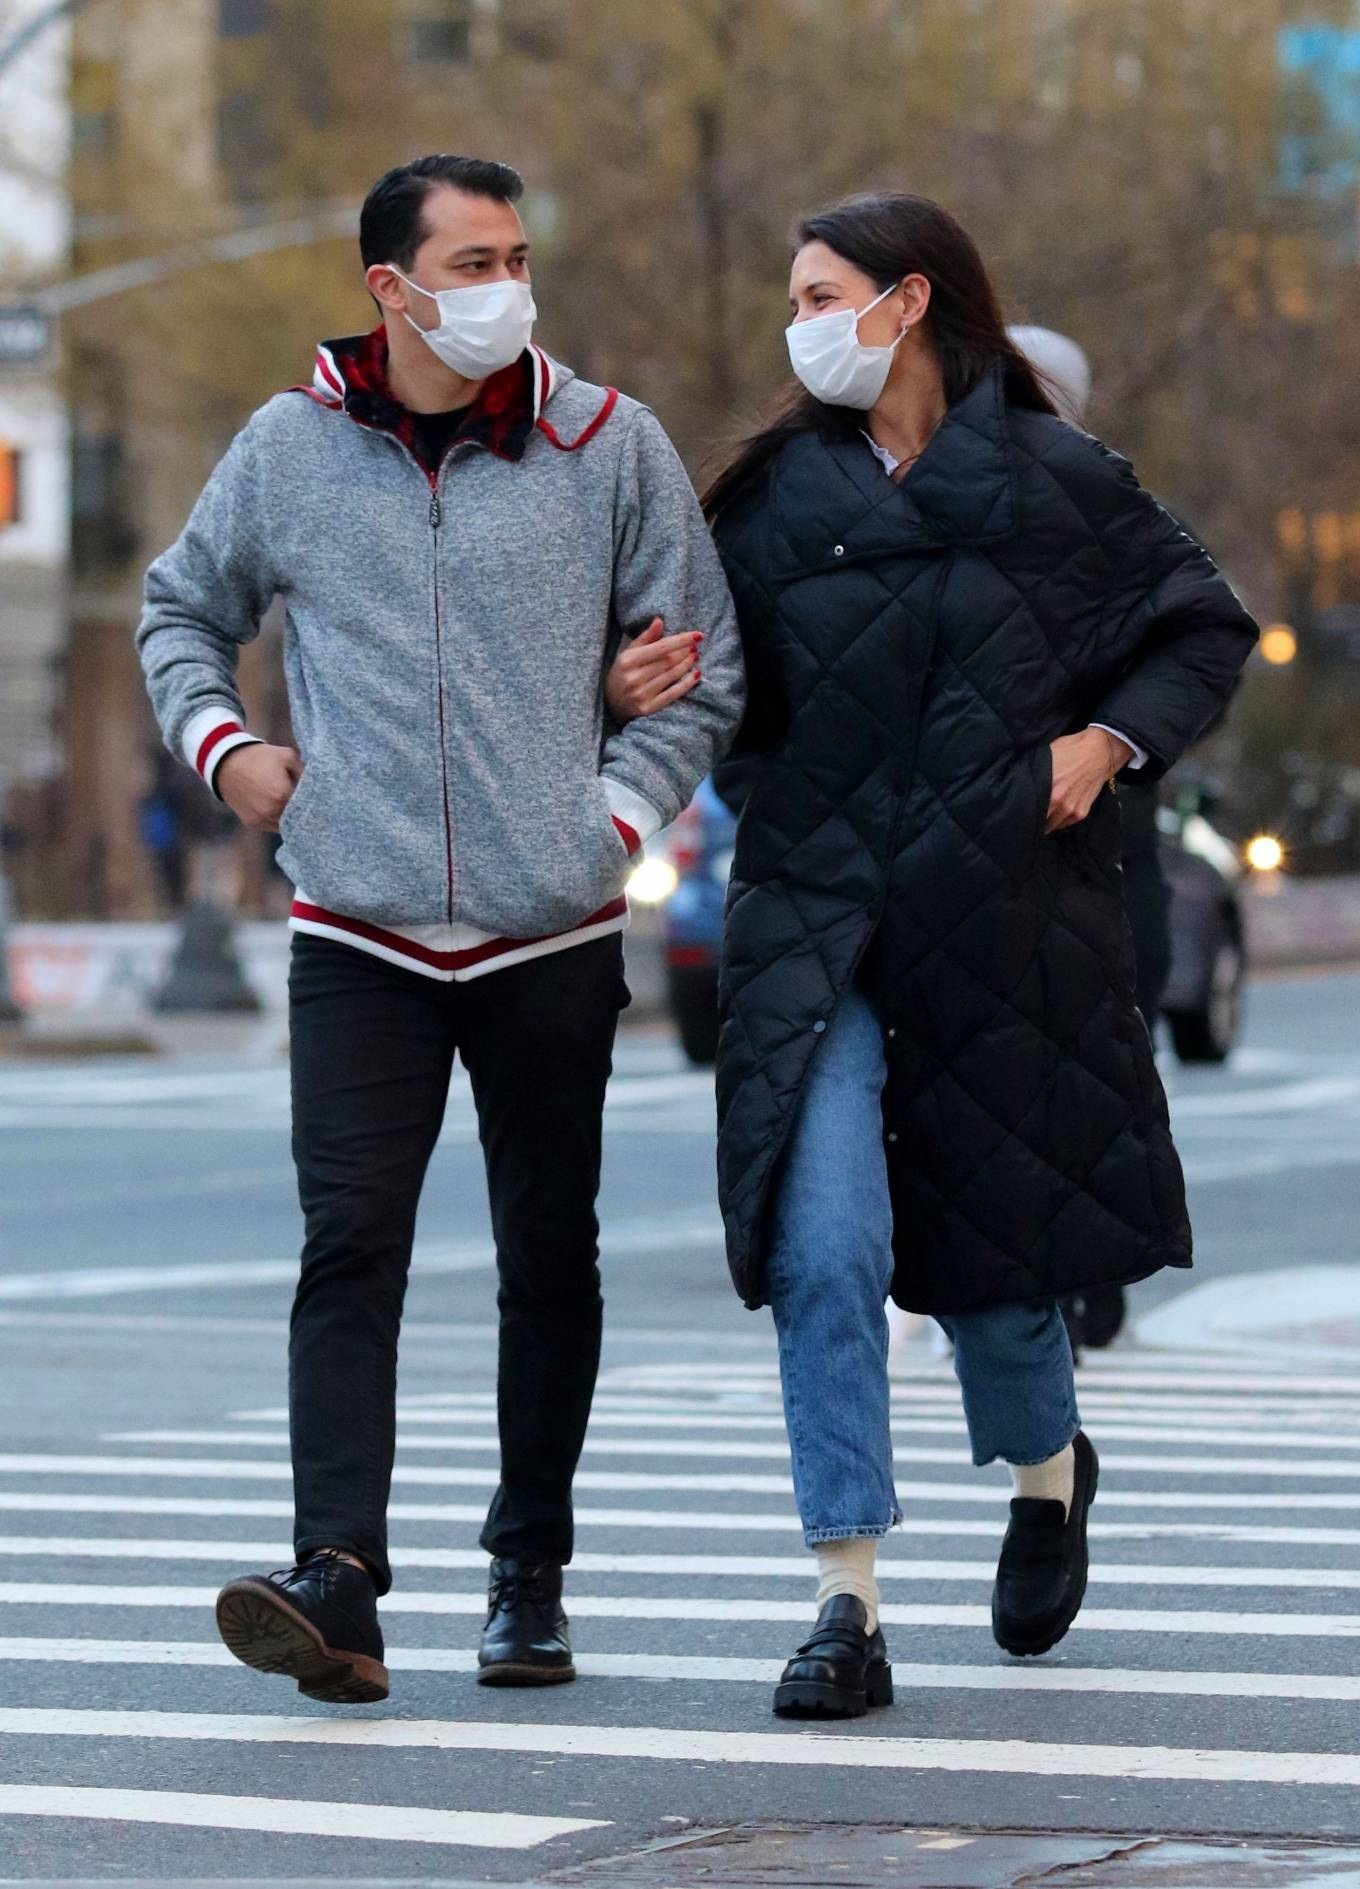 Katie Holmes - With her boyfriend Emilio Vitolo Jr. in Manhattan's Soho neighborhood